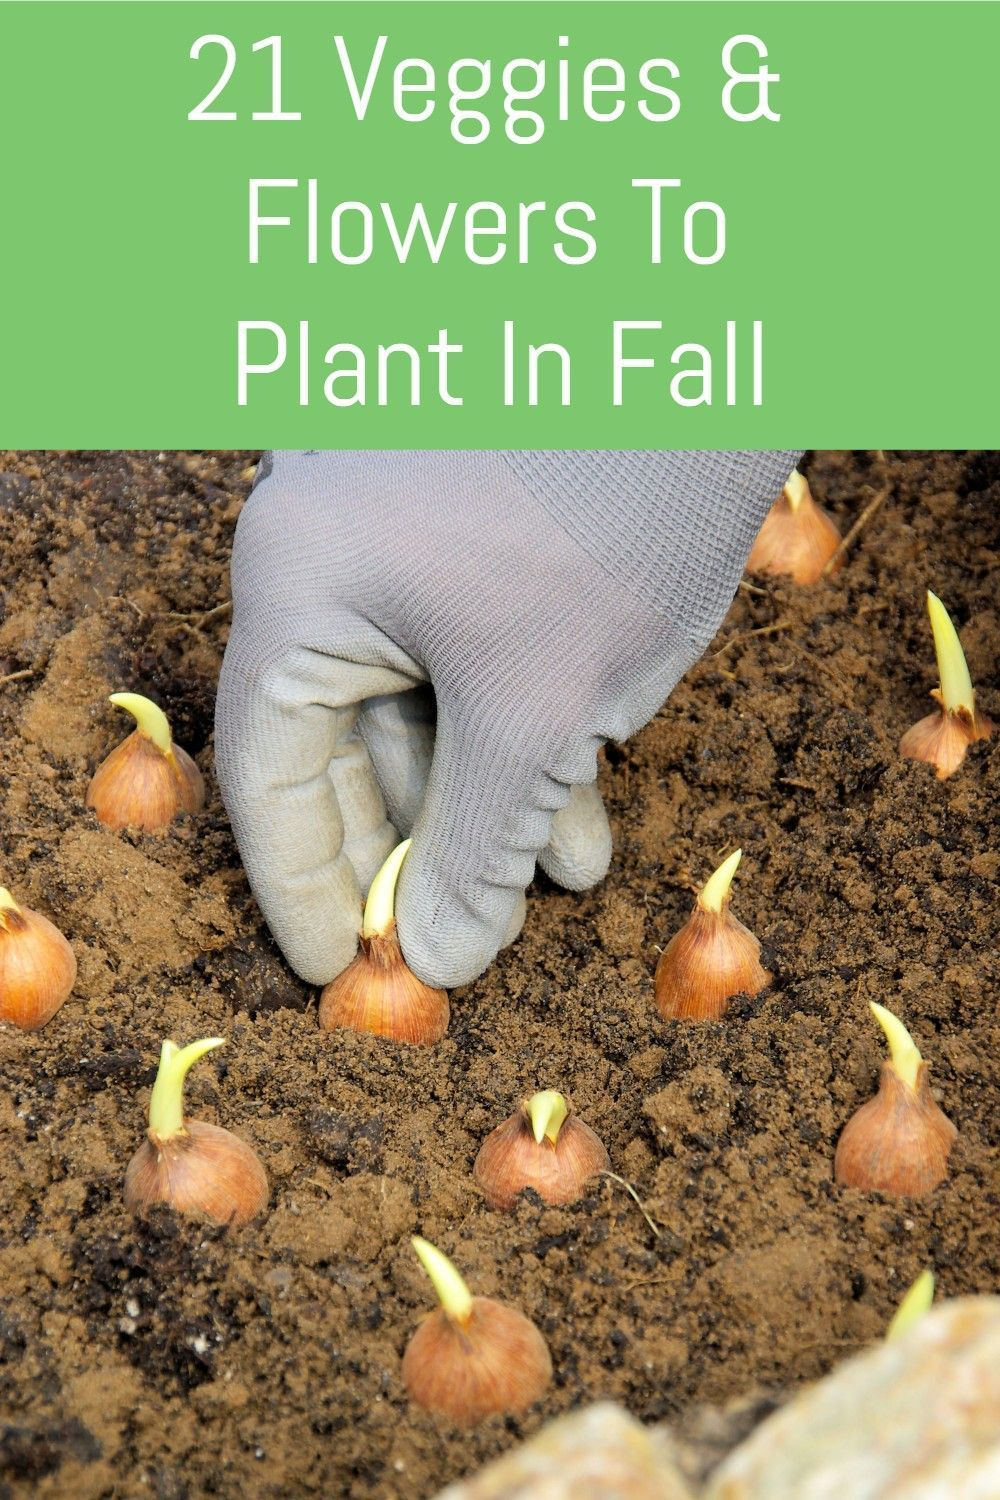 21 Veggies & Flowers To Plant In The Garden In Fal